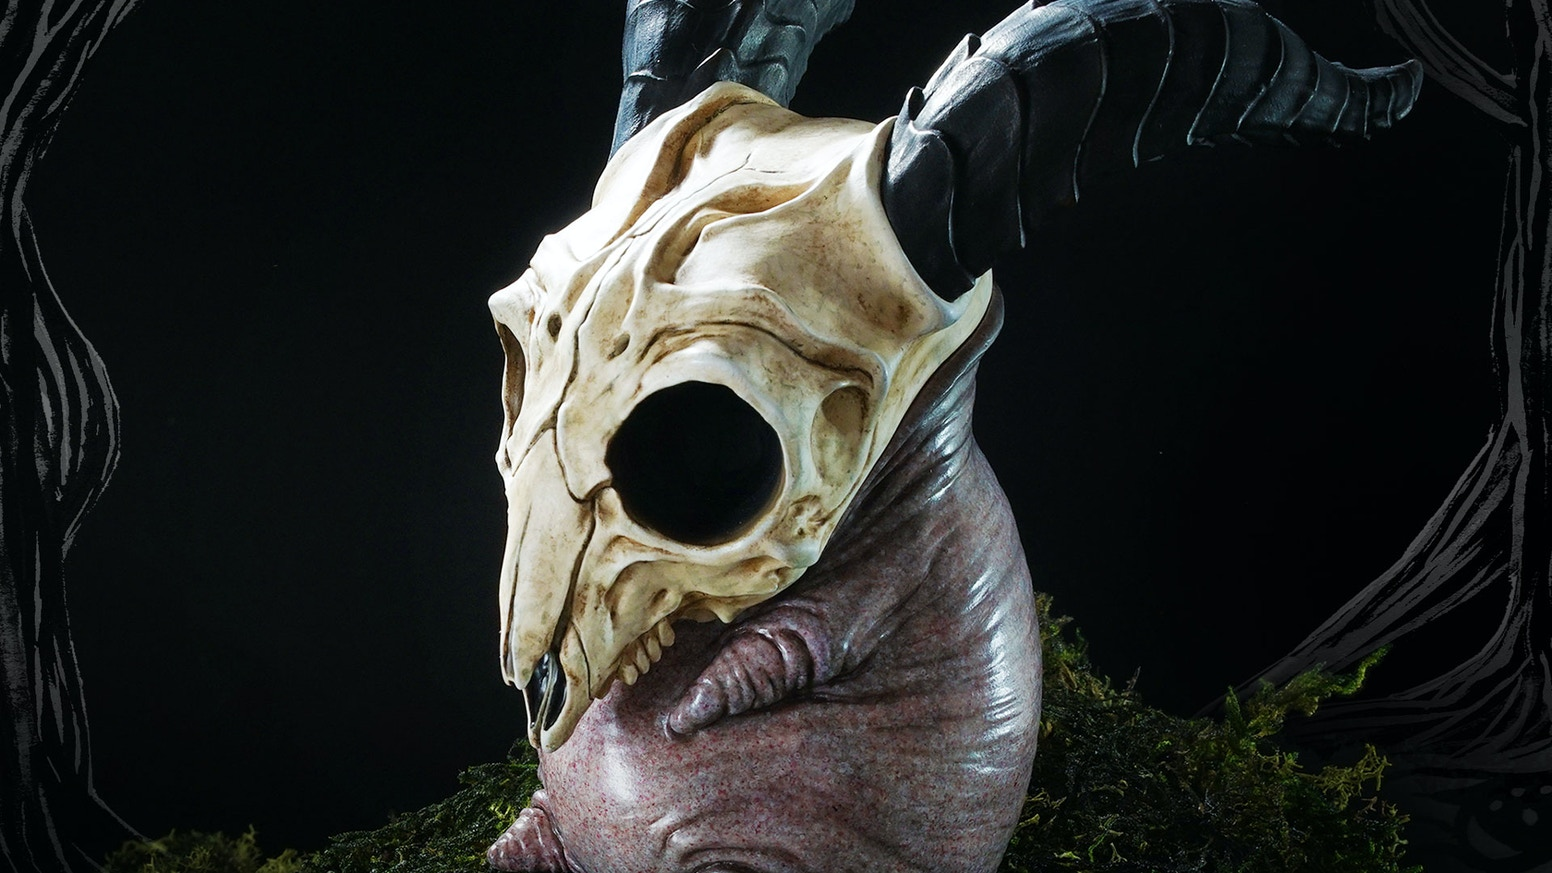 Bobby is the first creature from the world of Creepy Hill produced as a pre-painted resin figure.